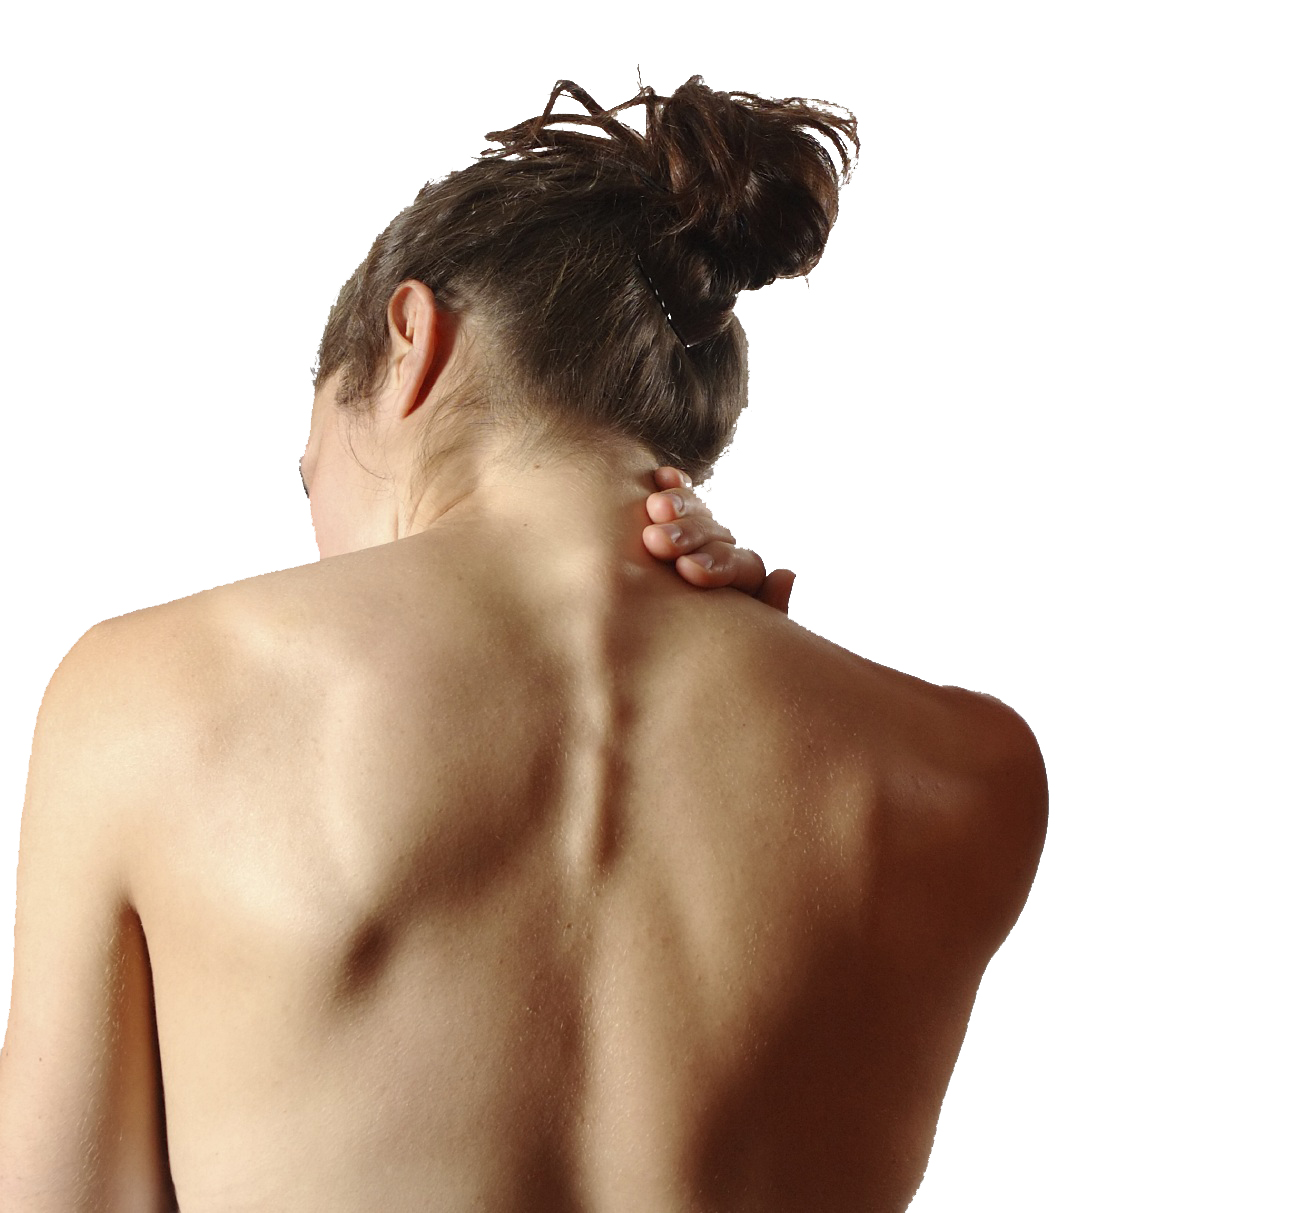 Image Result For Neck Bone Sticking Out